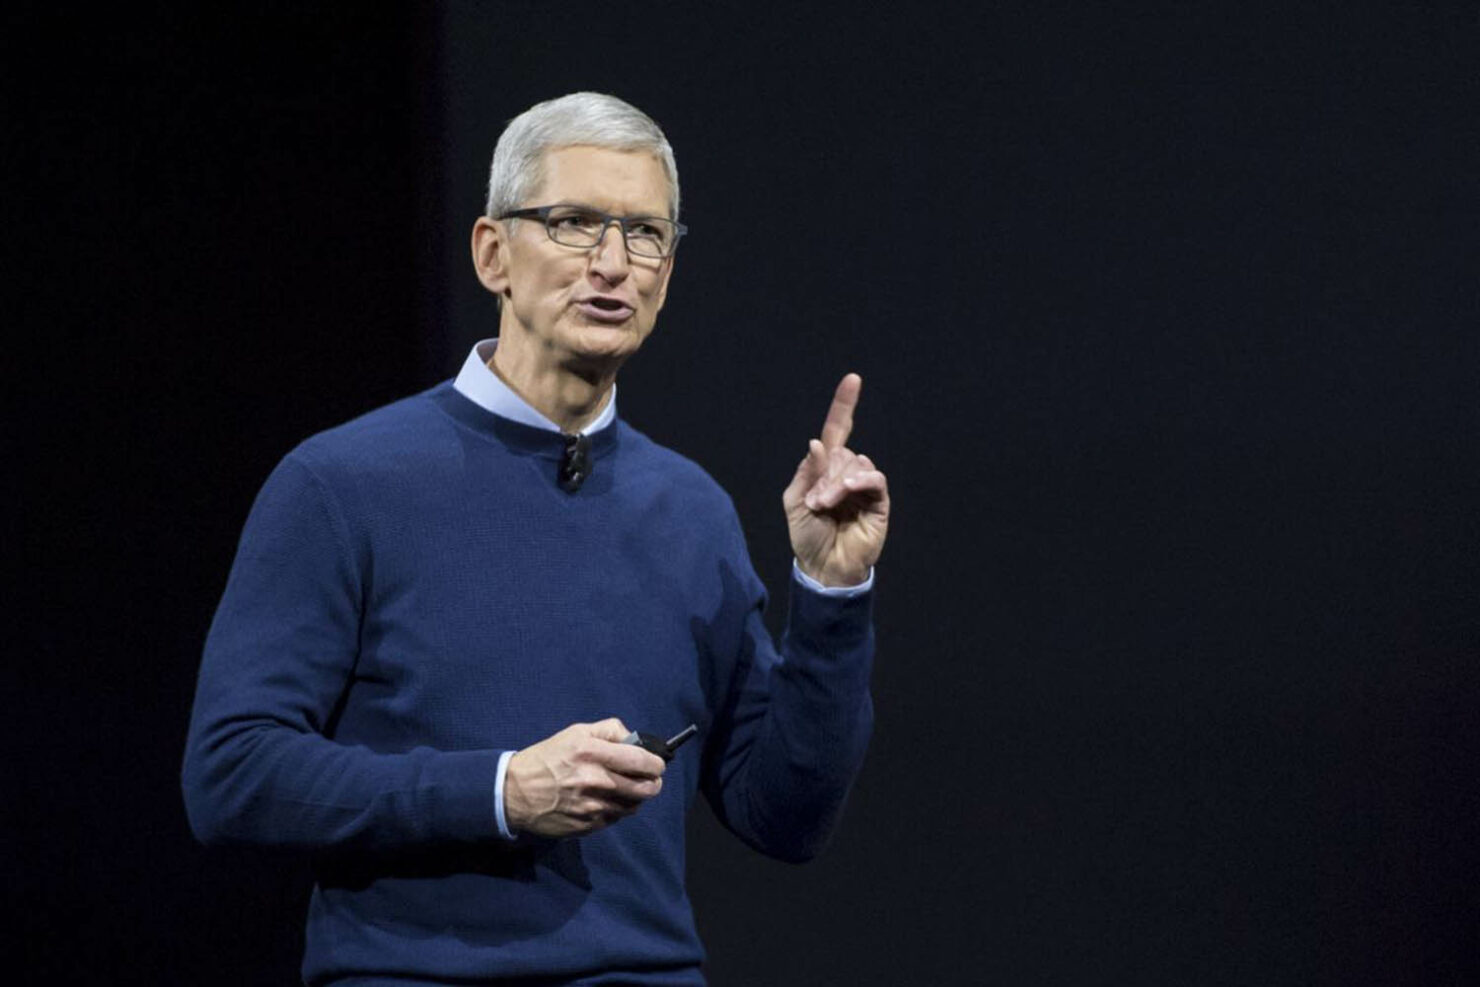 Apple CEO Tim Cook Says Android Has 47 Times More Malware Than iOS